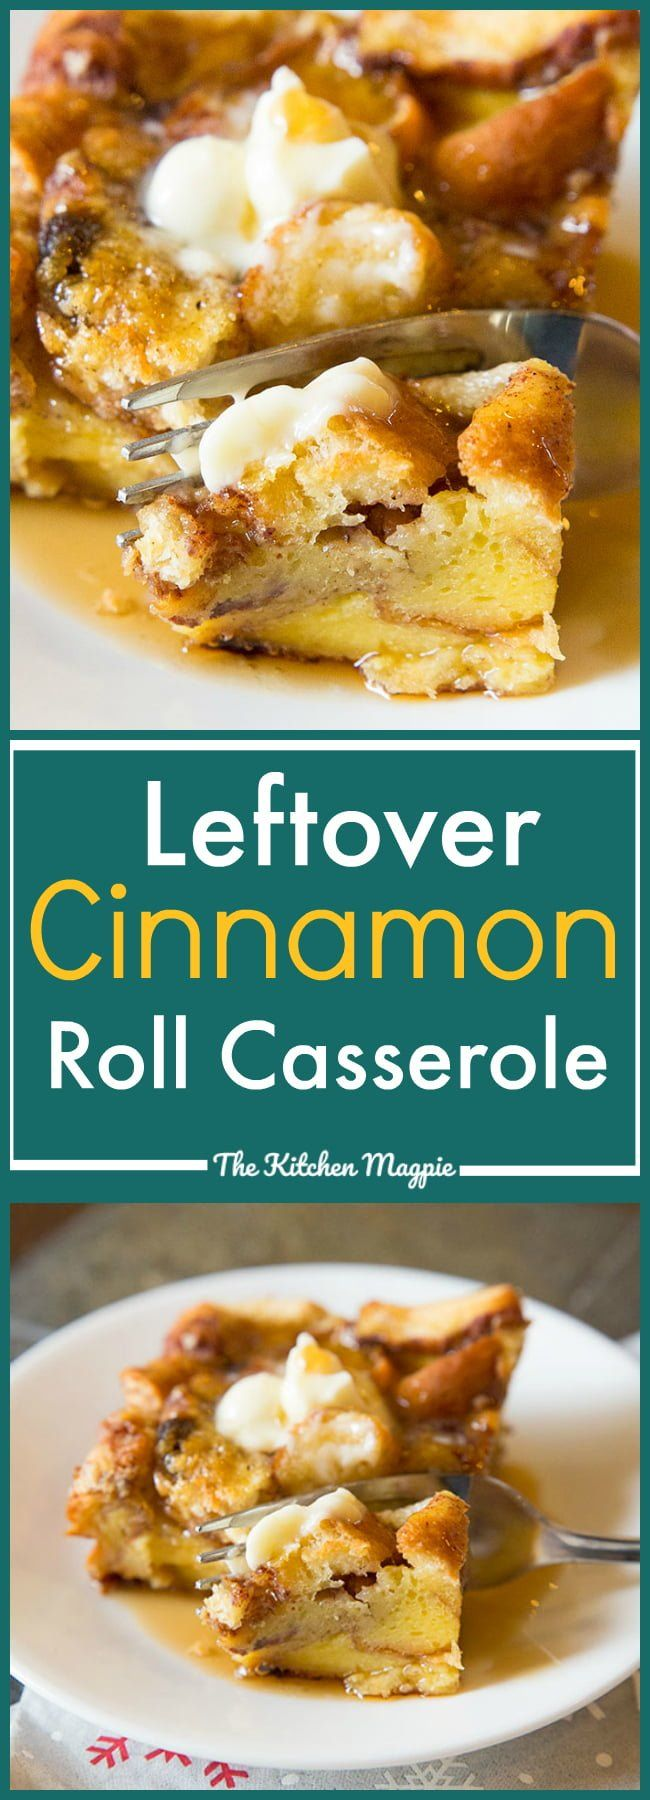 Photo of Leftover Cinnamon Rolls French Toast Casserole   The Kitchen Magpie